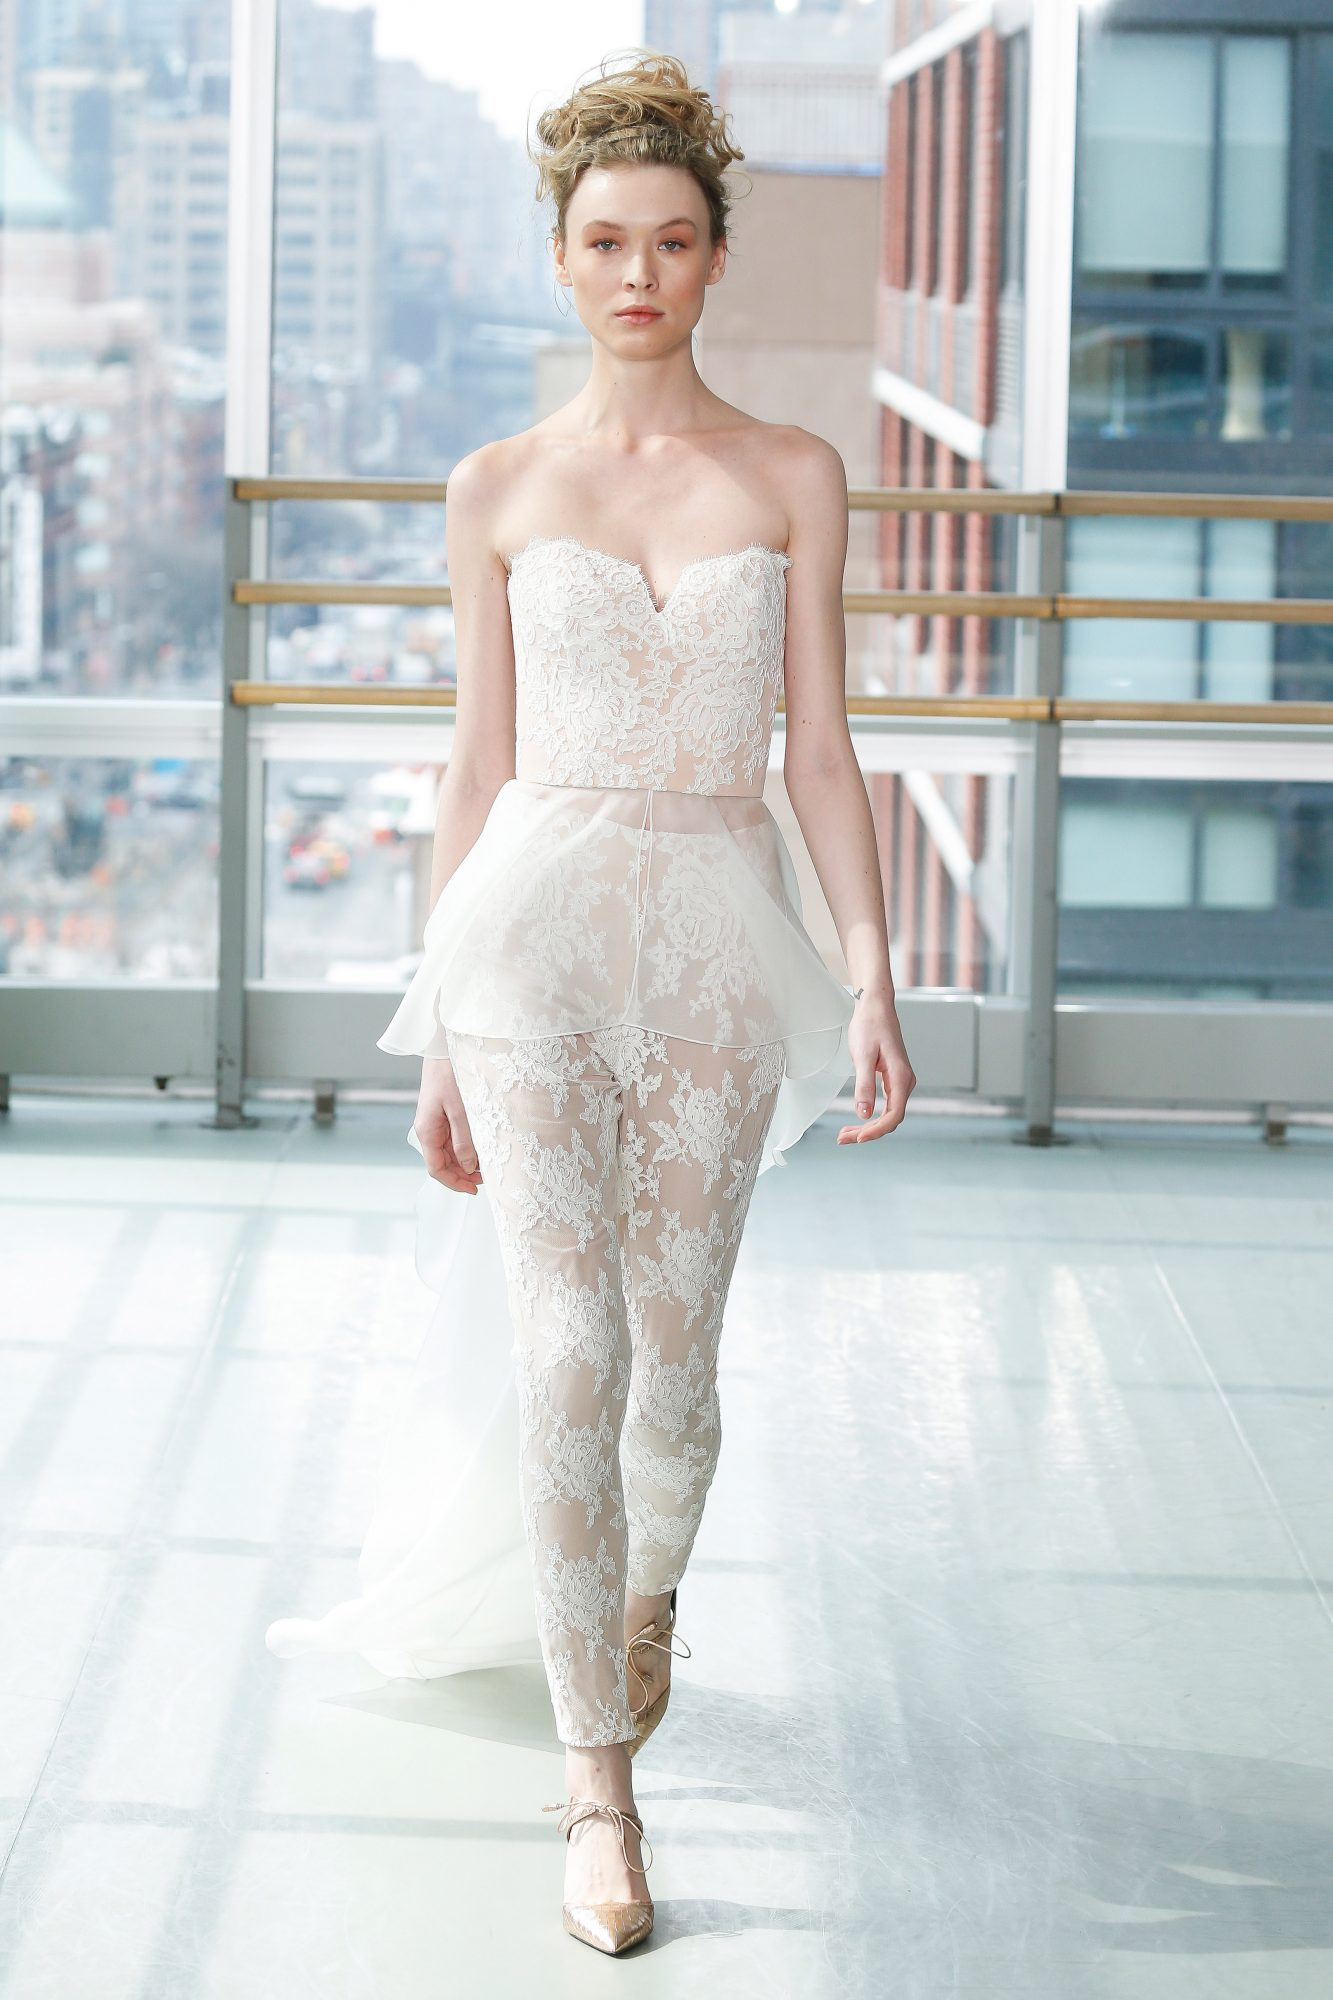 gracy accad wedding dress spring 2019 pants jumper strapless lace